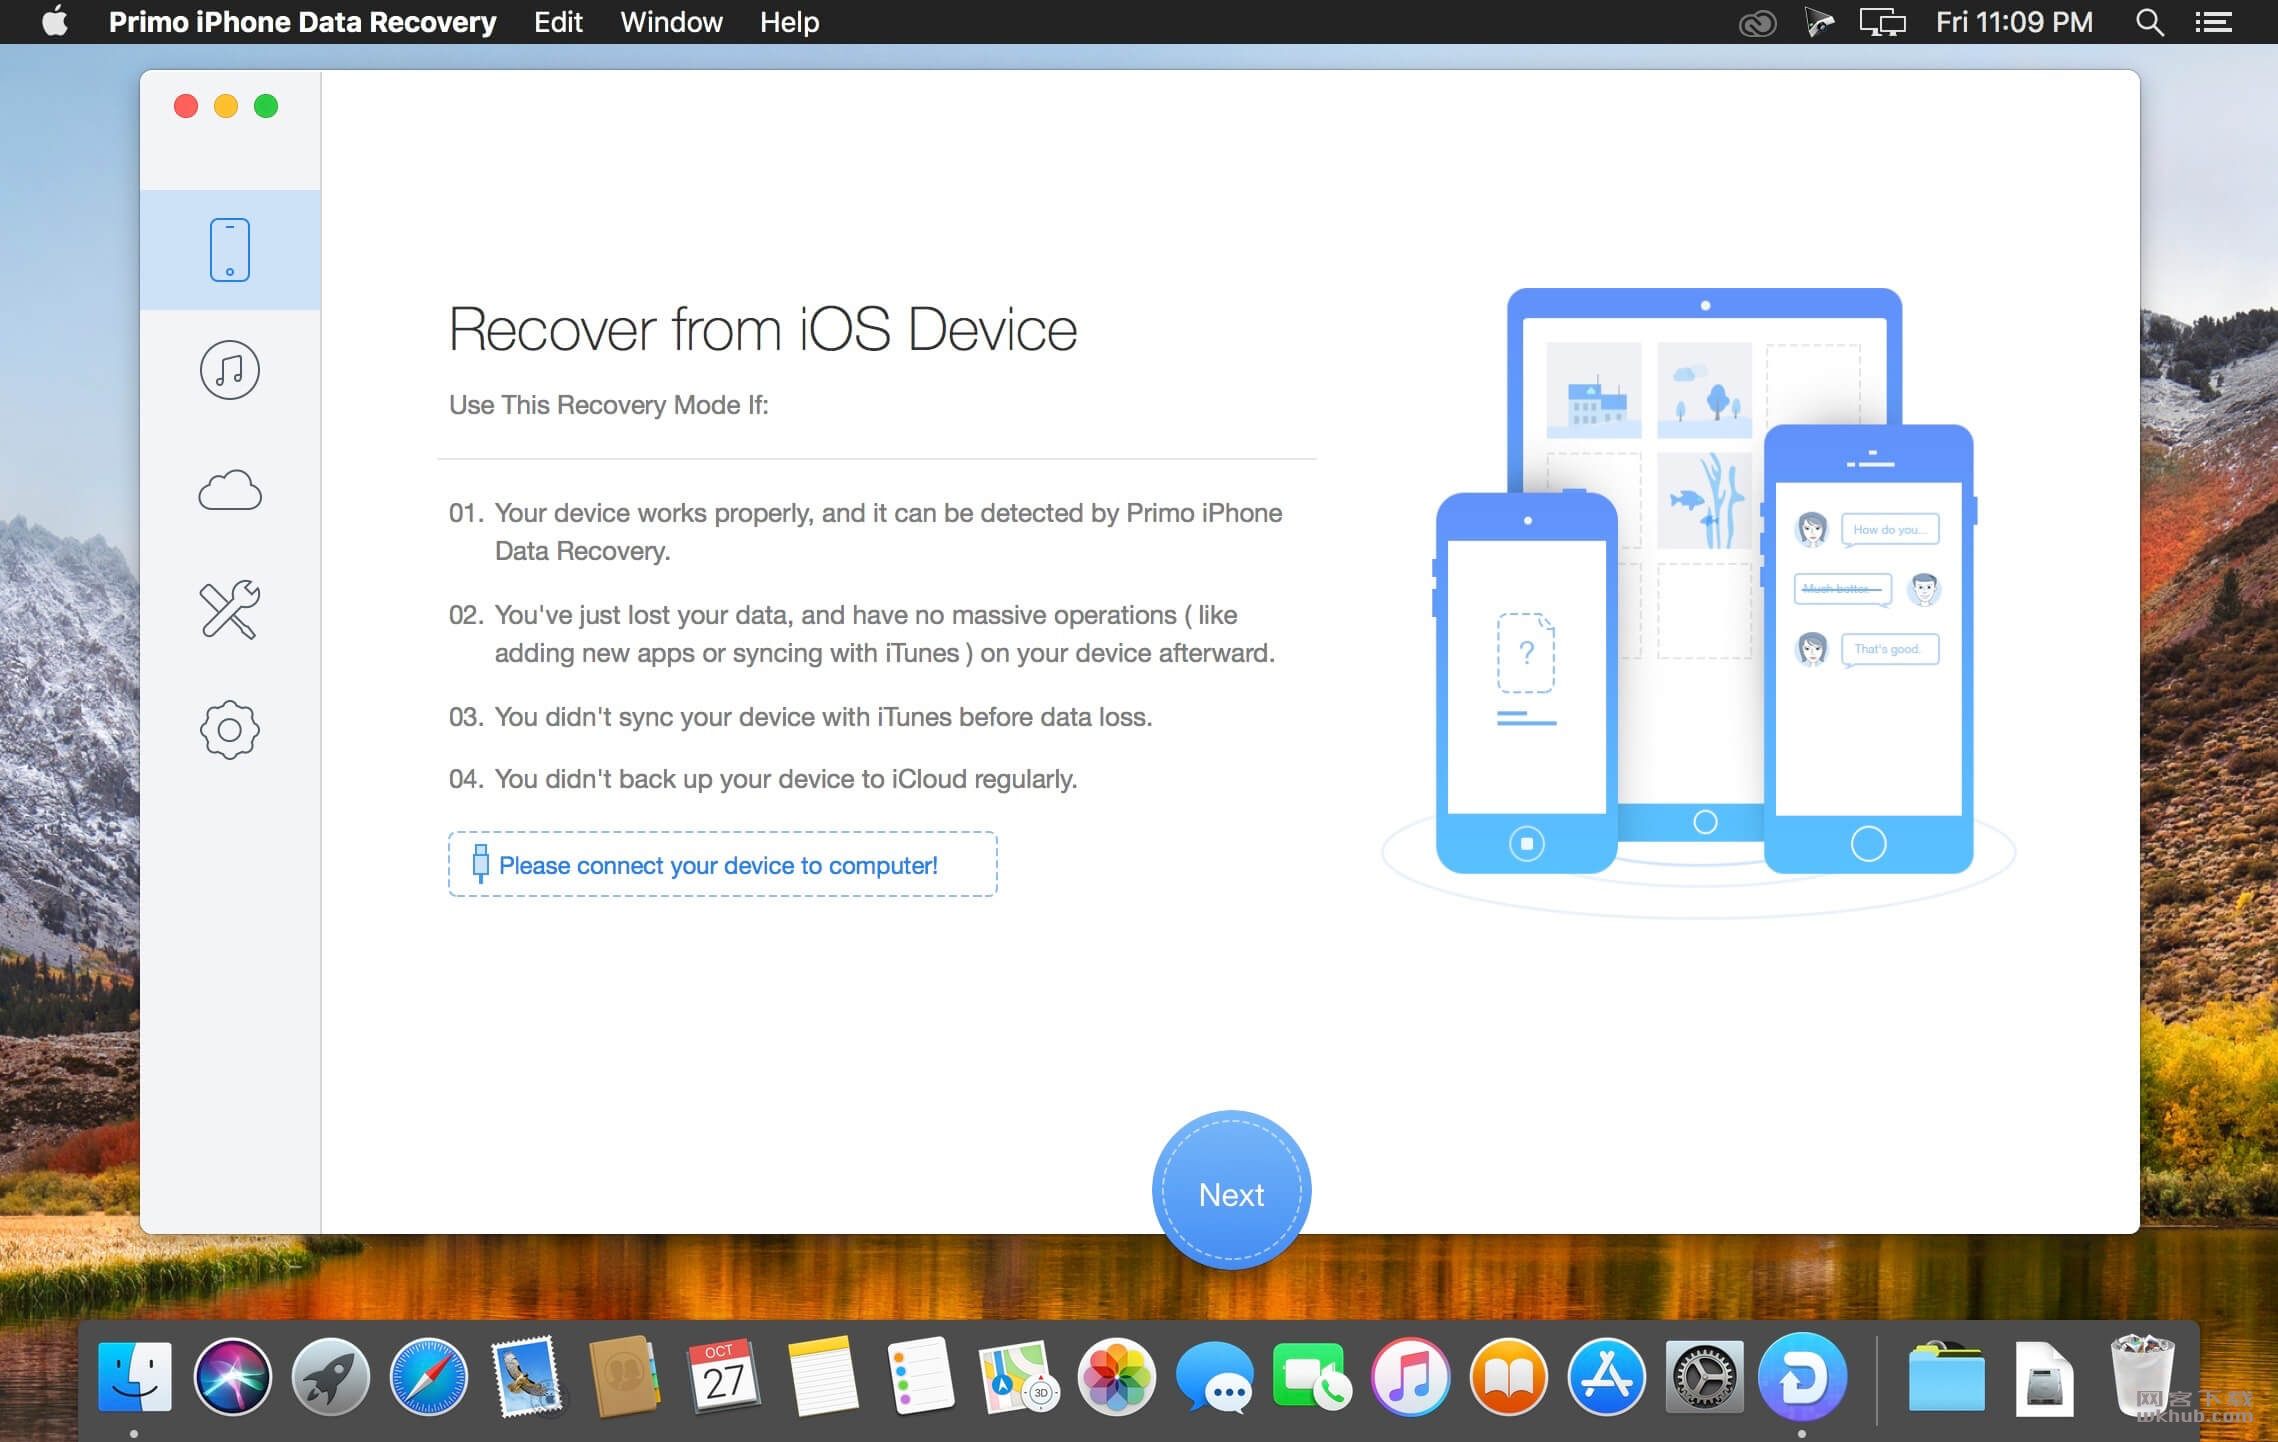 Primo iPhone Data Recovery 2.3.1 iOS设备数据恢复工具